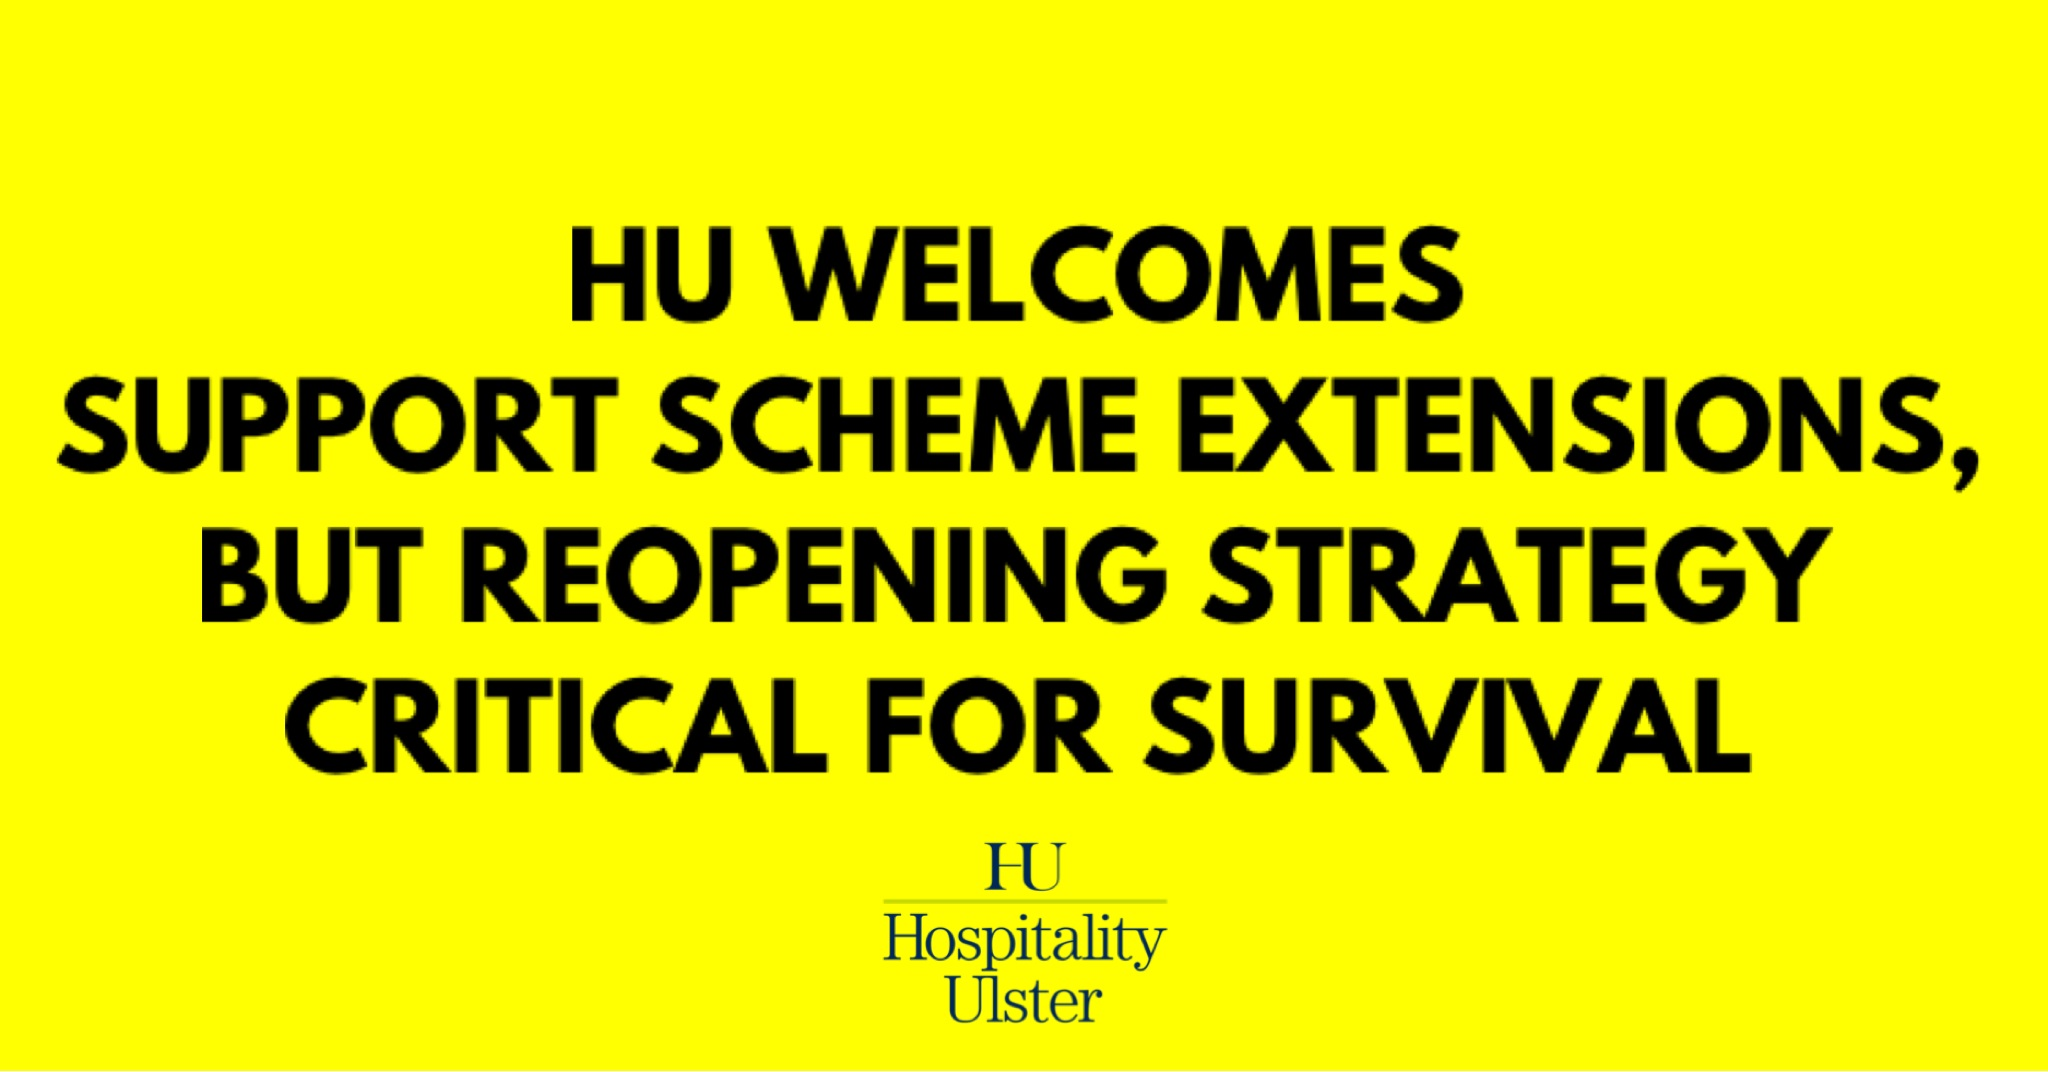 HU WELCOMES SUPPORT SCHEME EXTENSIONS - BUT REOPENING STRATEGY CRITICAL FOR SURVIVAL